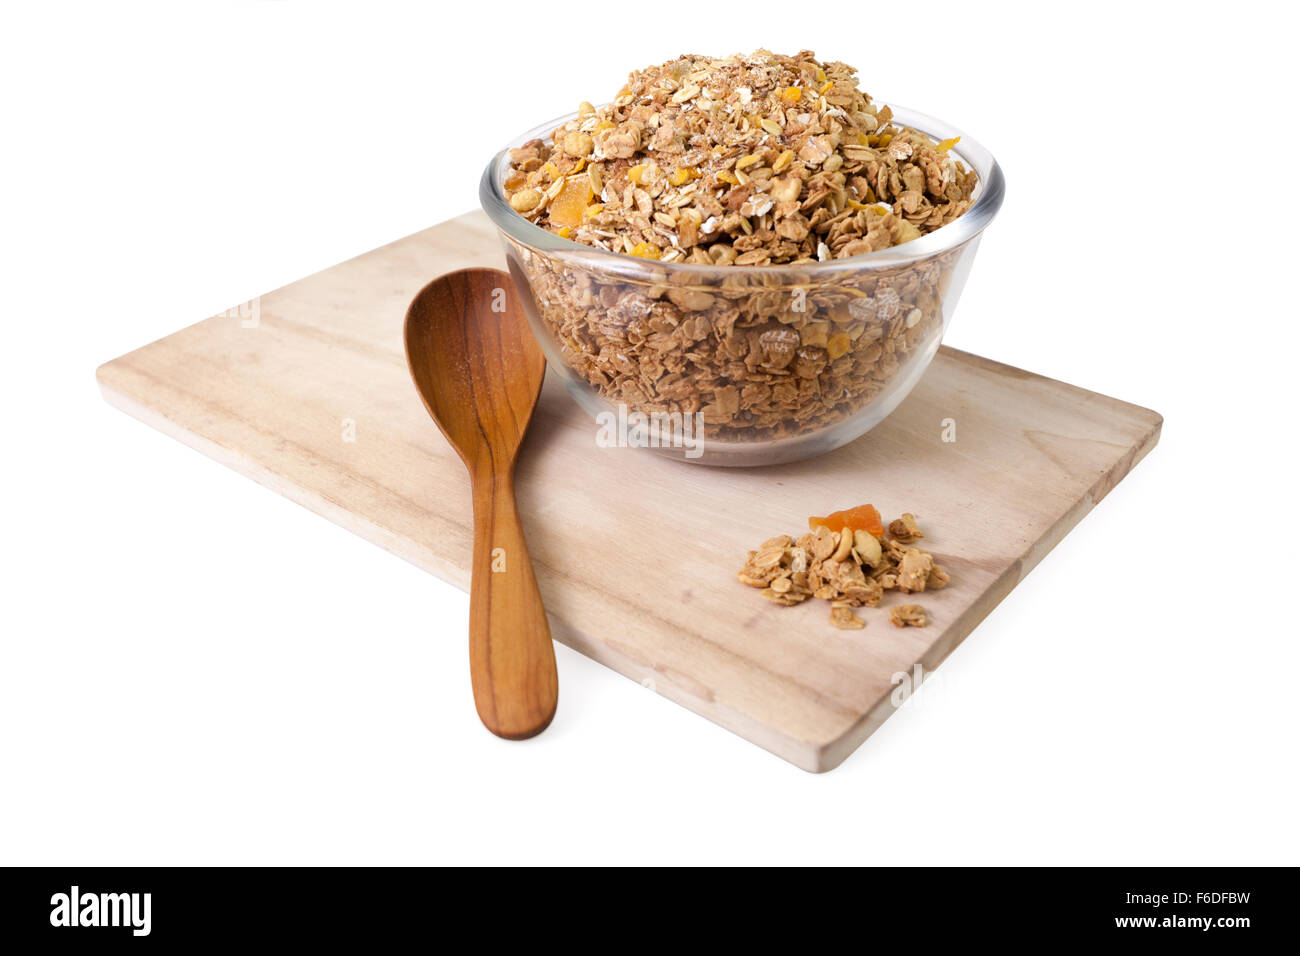 Granola cereal with dried fruits and wooden spoon isolated on white background Stock Photo